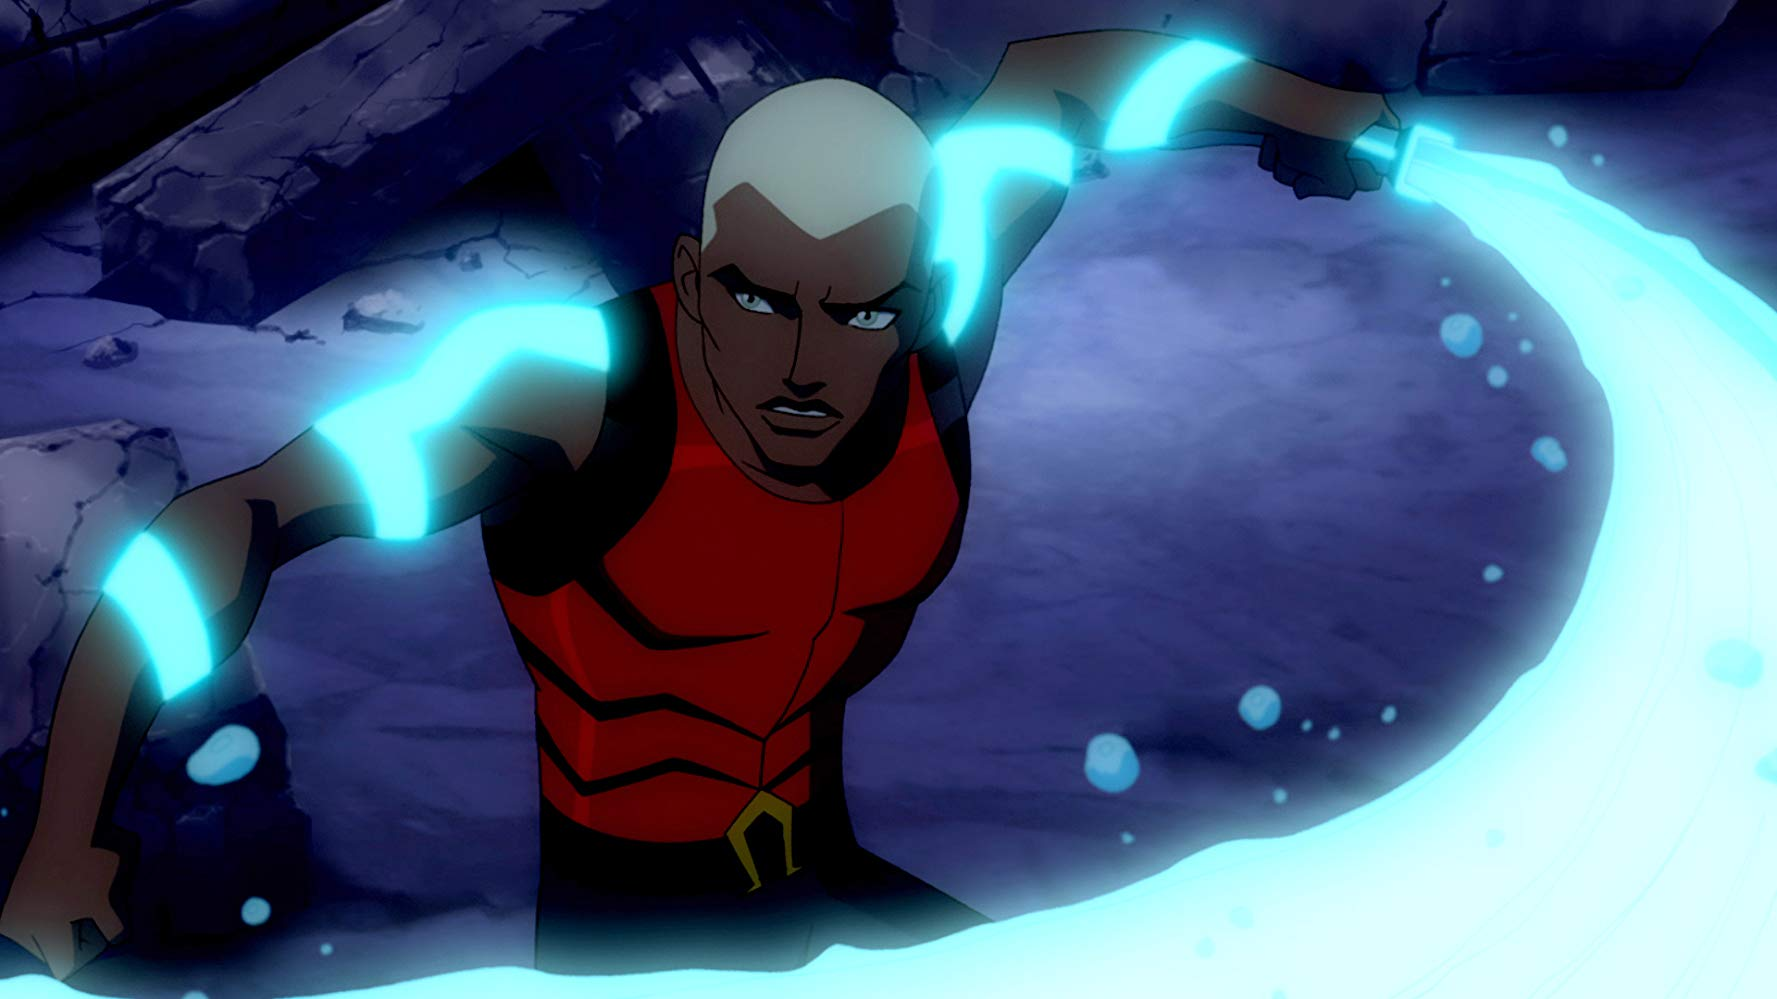 Khary Payton as Aqualad in 'Young Justice'. Source: IMDB